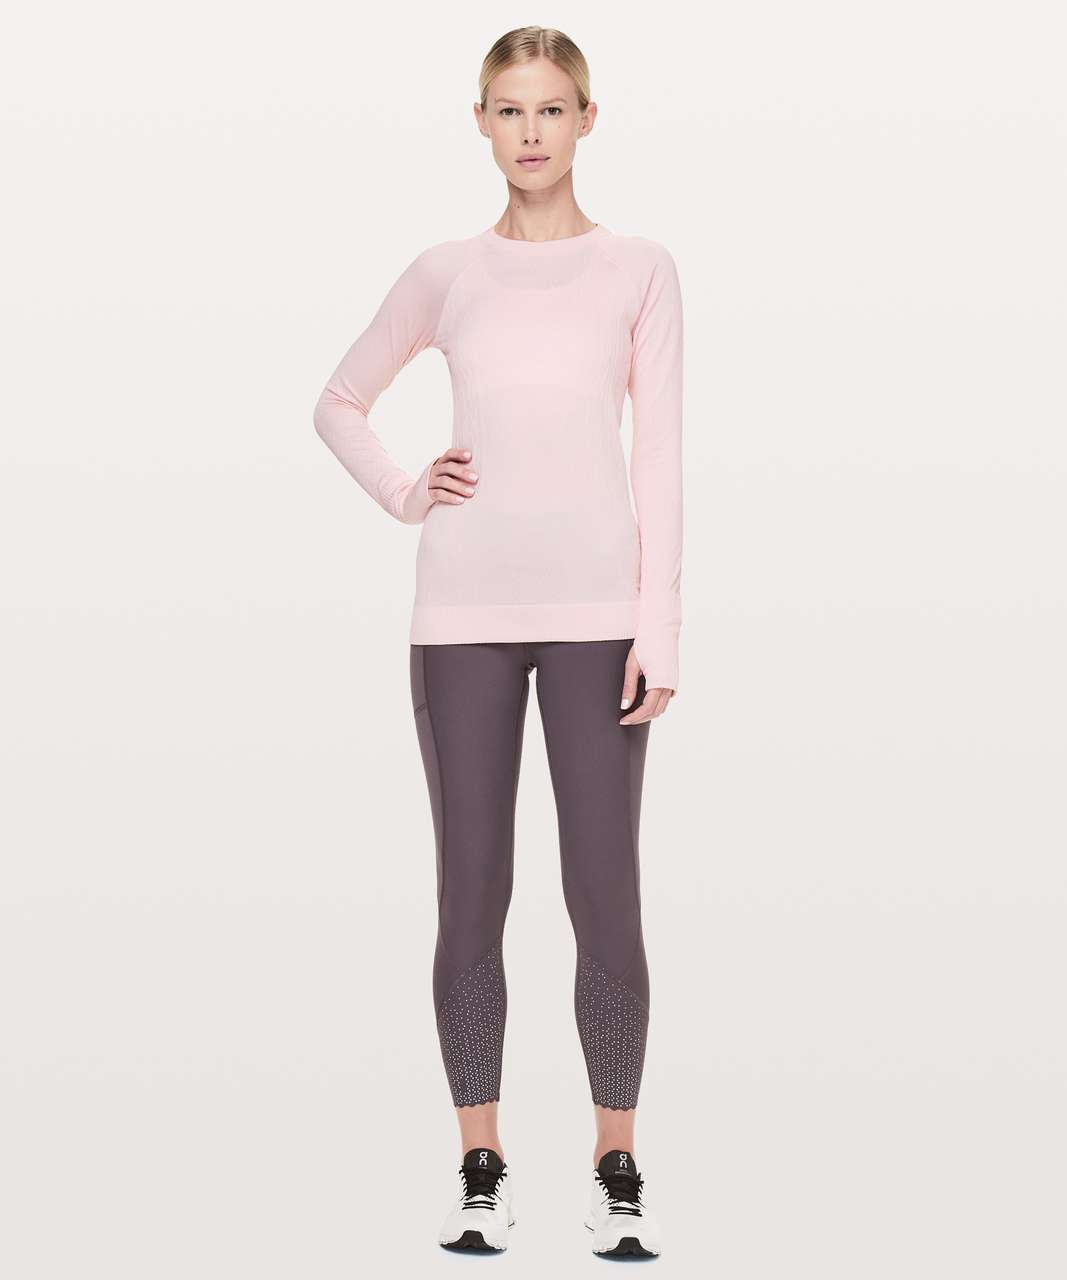 df268ee85ff95 Lululemon Rest Less Pullover - Blissful Pink   Blissful Pink - lulu ...